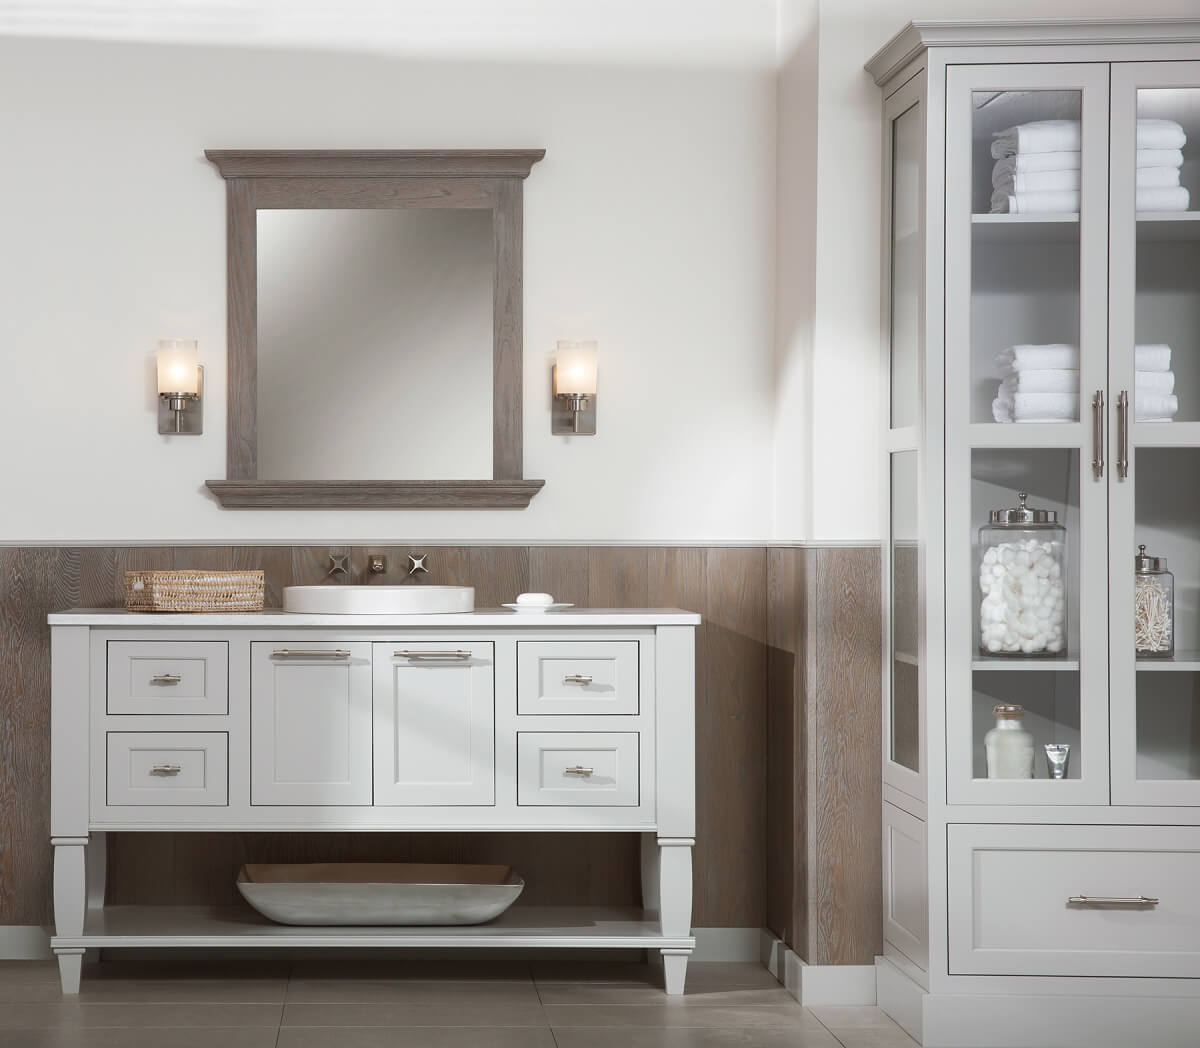 Transitional style bathroom featuring Dura Supreme Cabinetry's furniture vanity style five in the Kendall Panel (inset) door style with Sliver Mist paint finish. Mirror and paneling in a contrasting Weathered Finish